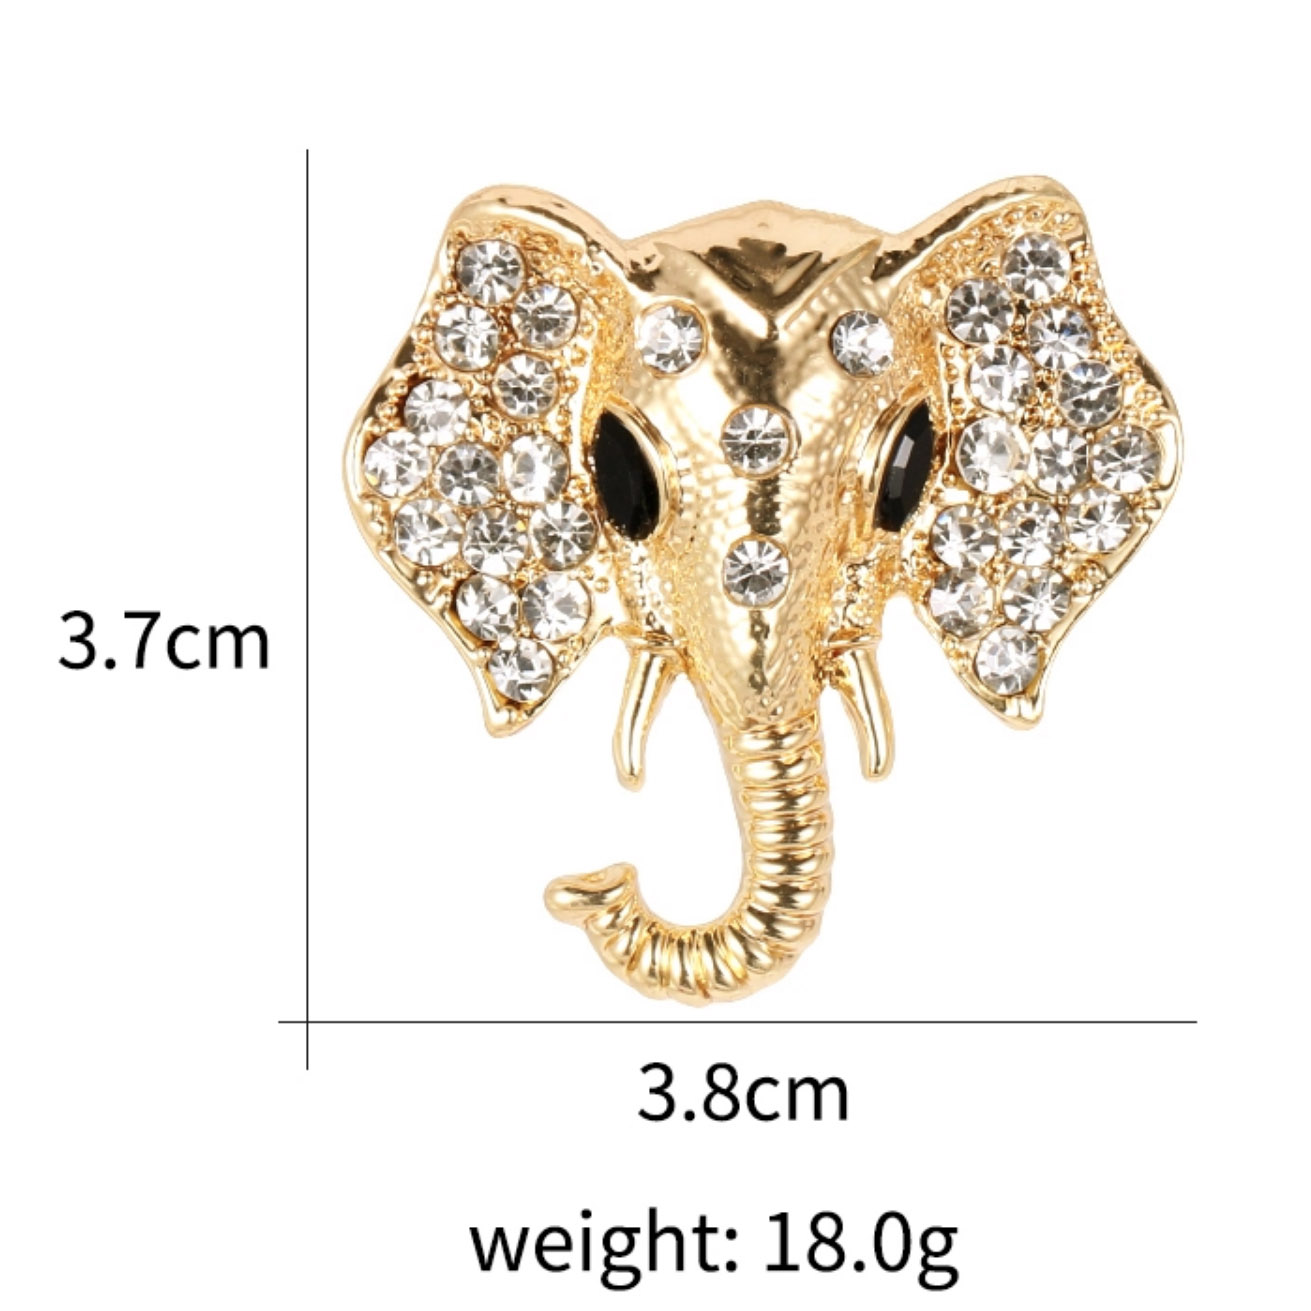 Thai elephant brooch